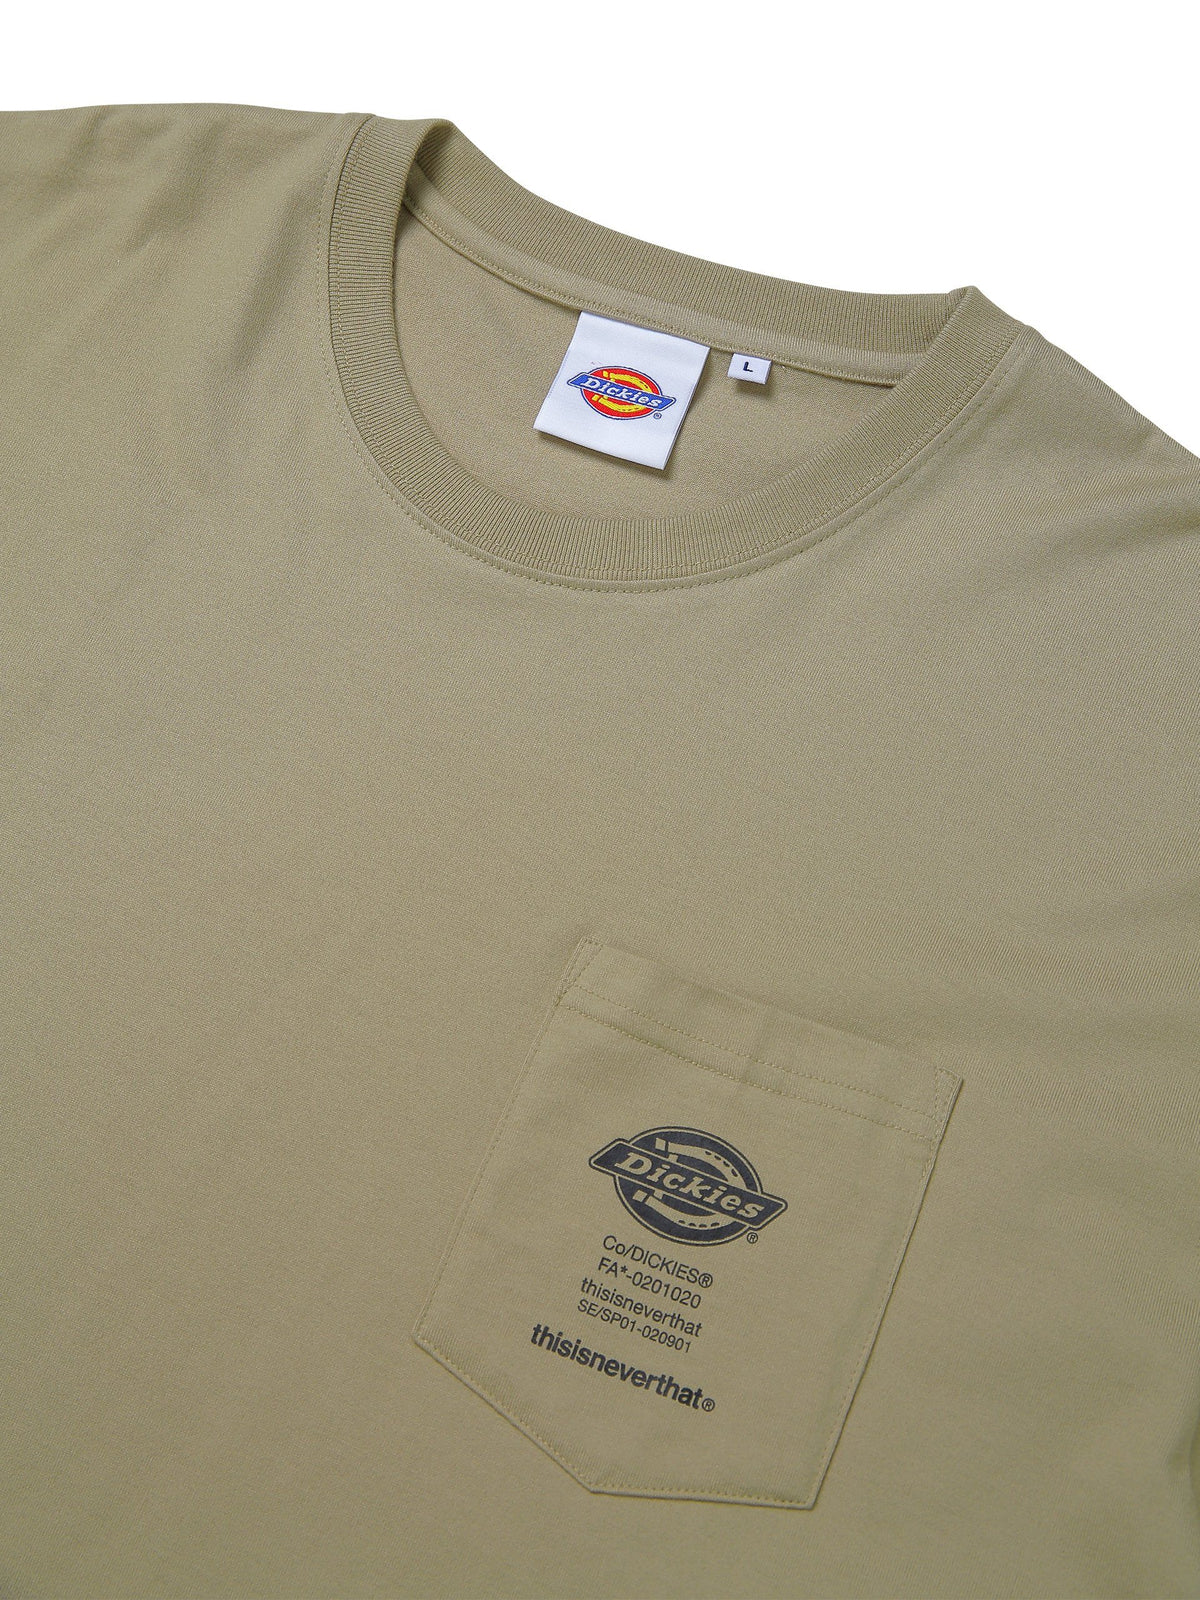 TNT Dickies Pocket Tee - thisisneverthat